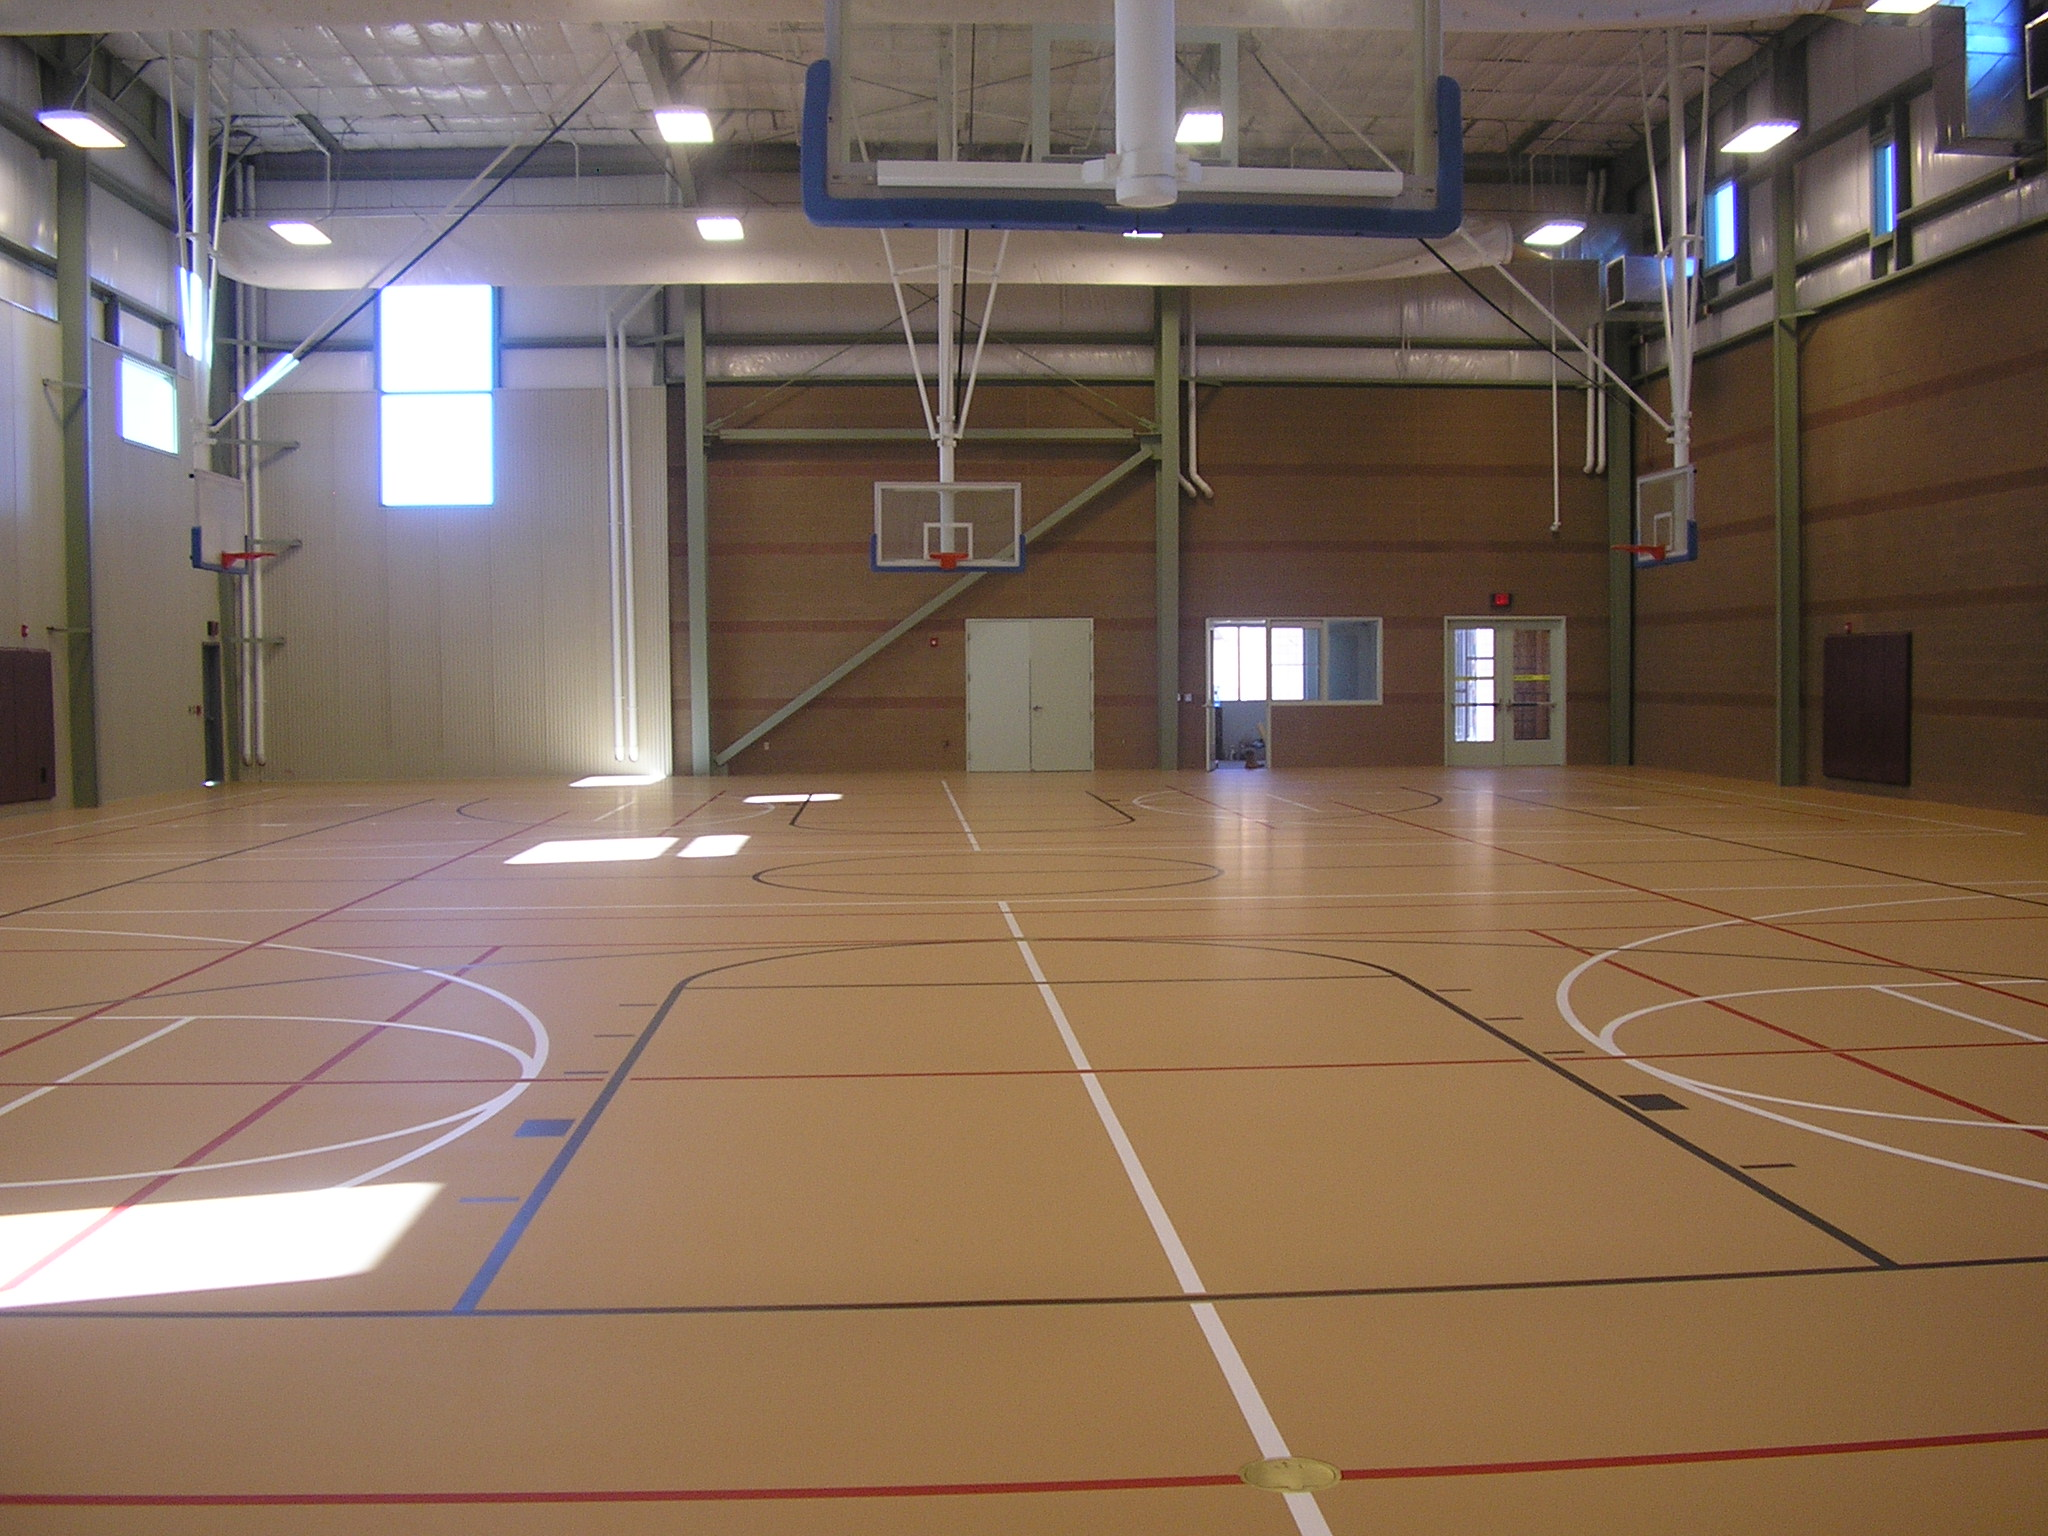 description node center hs basketball education activity kacpano floor community courts gym kennedy floors